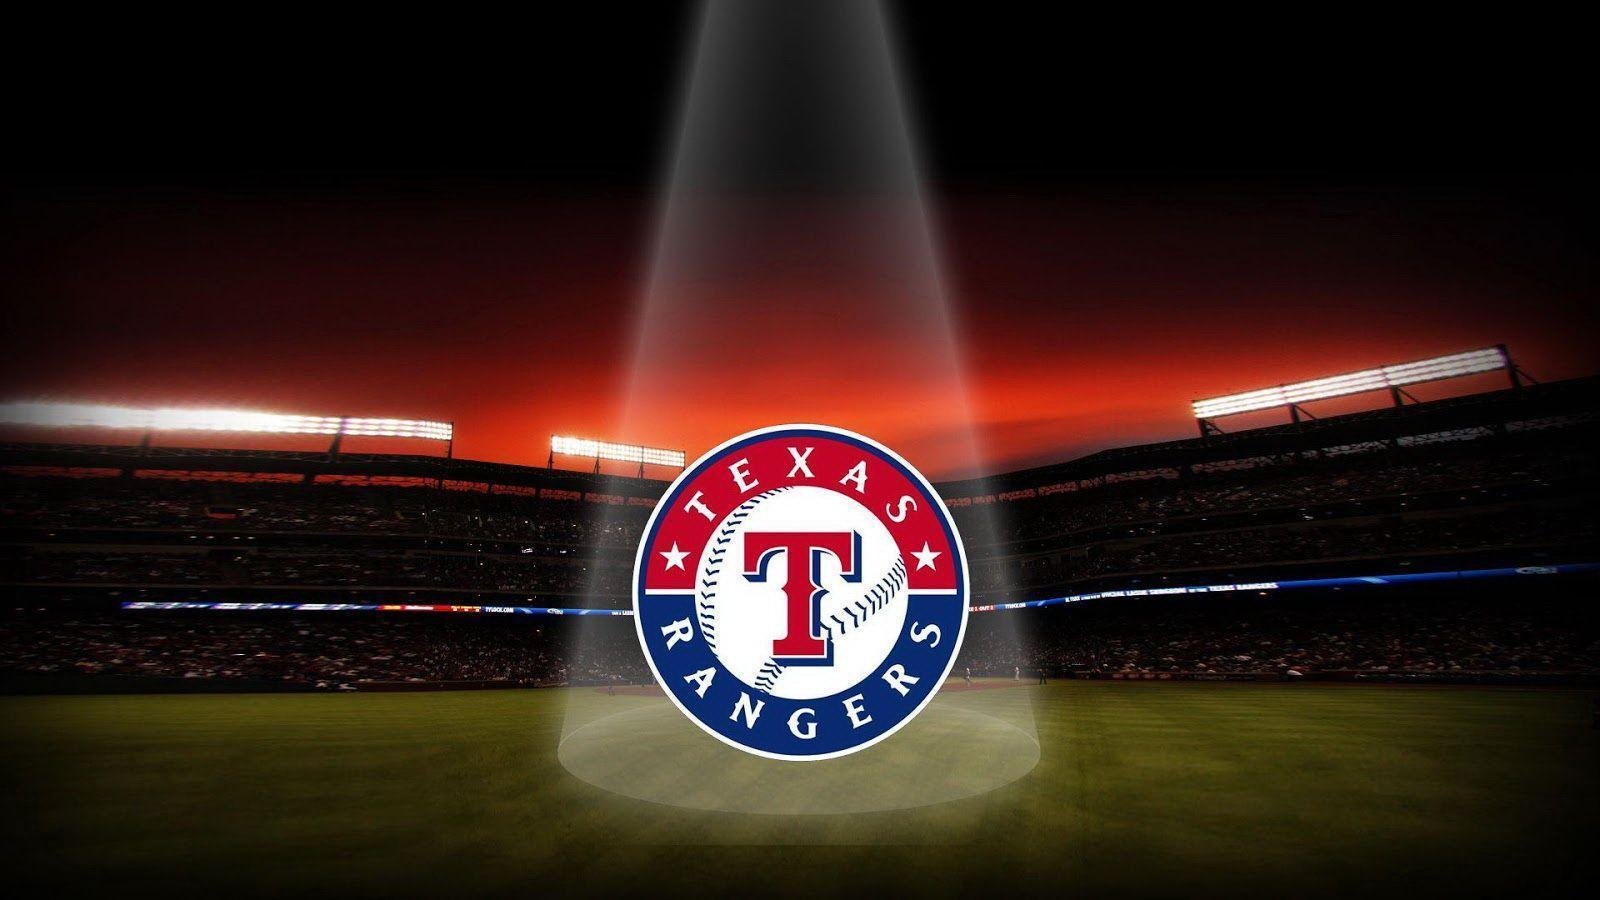 texas rangers wallpaper - photo #3